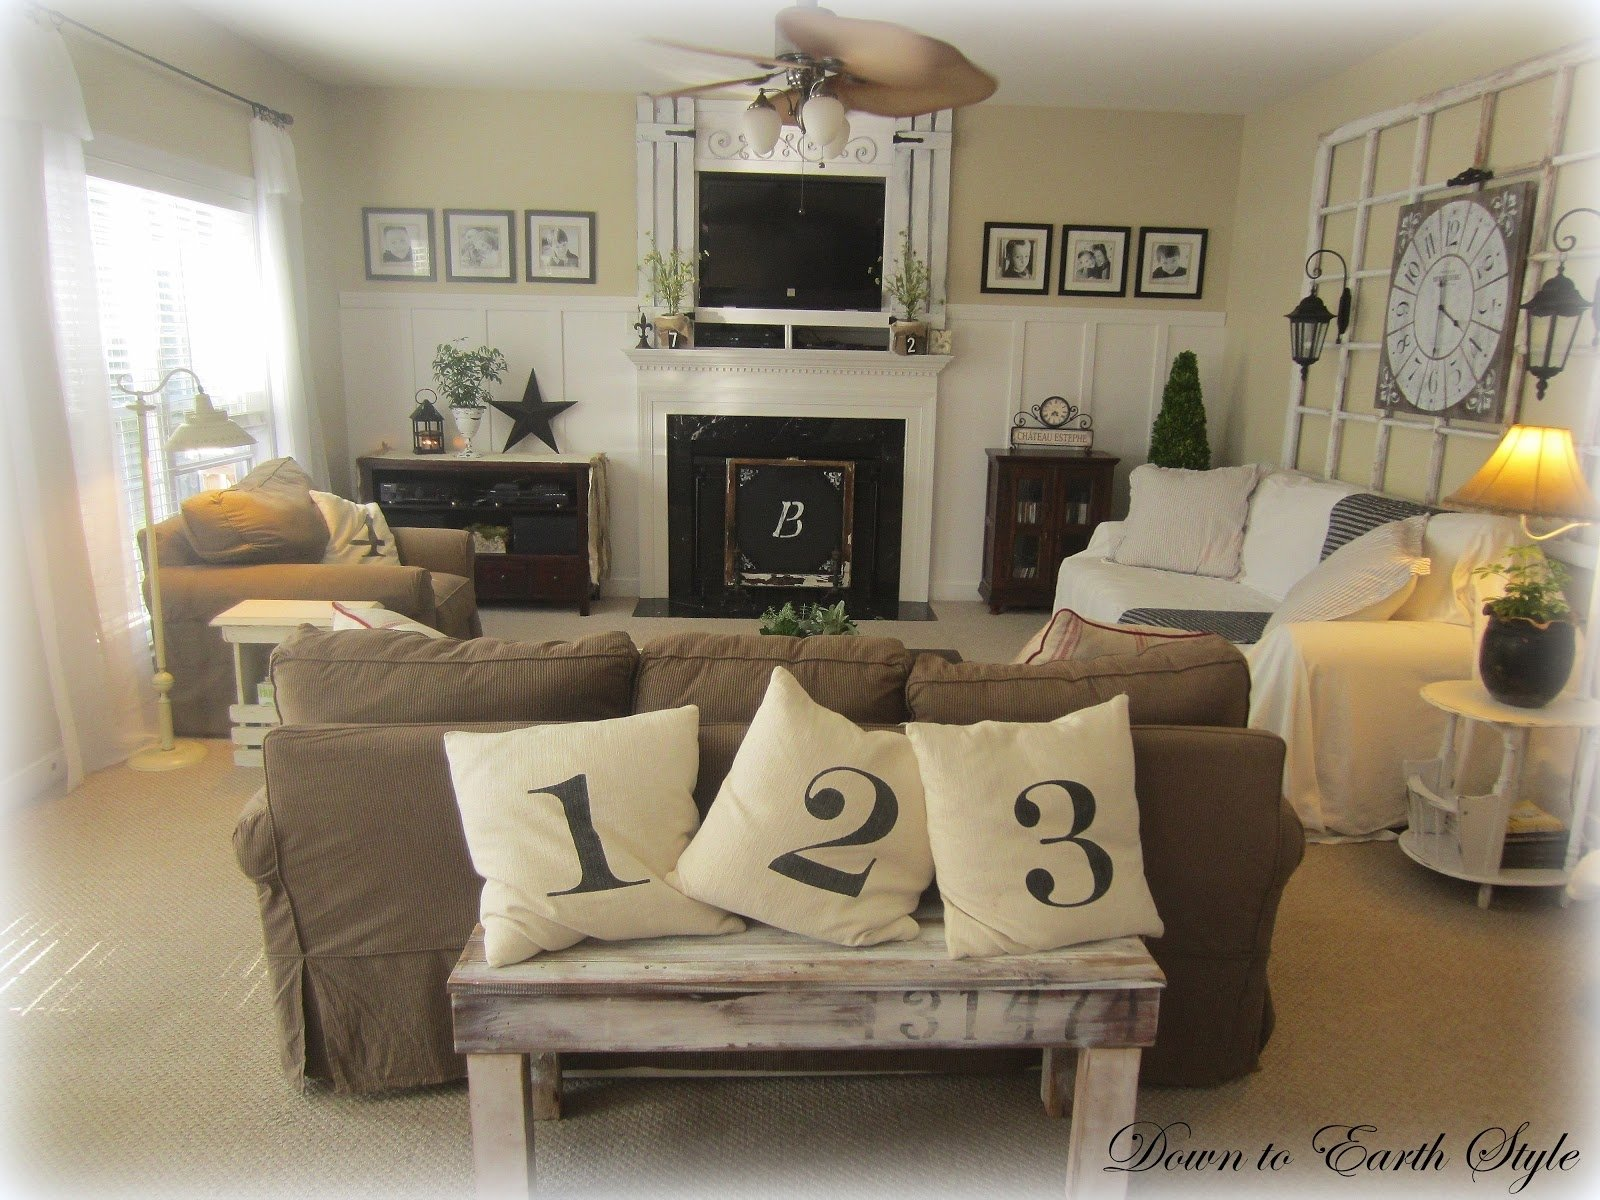 10 Lovable Rustic Decorating Ideas For Living Rooms rustic decor ideas living room fresh rustic room colors rustic 2021